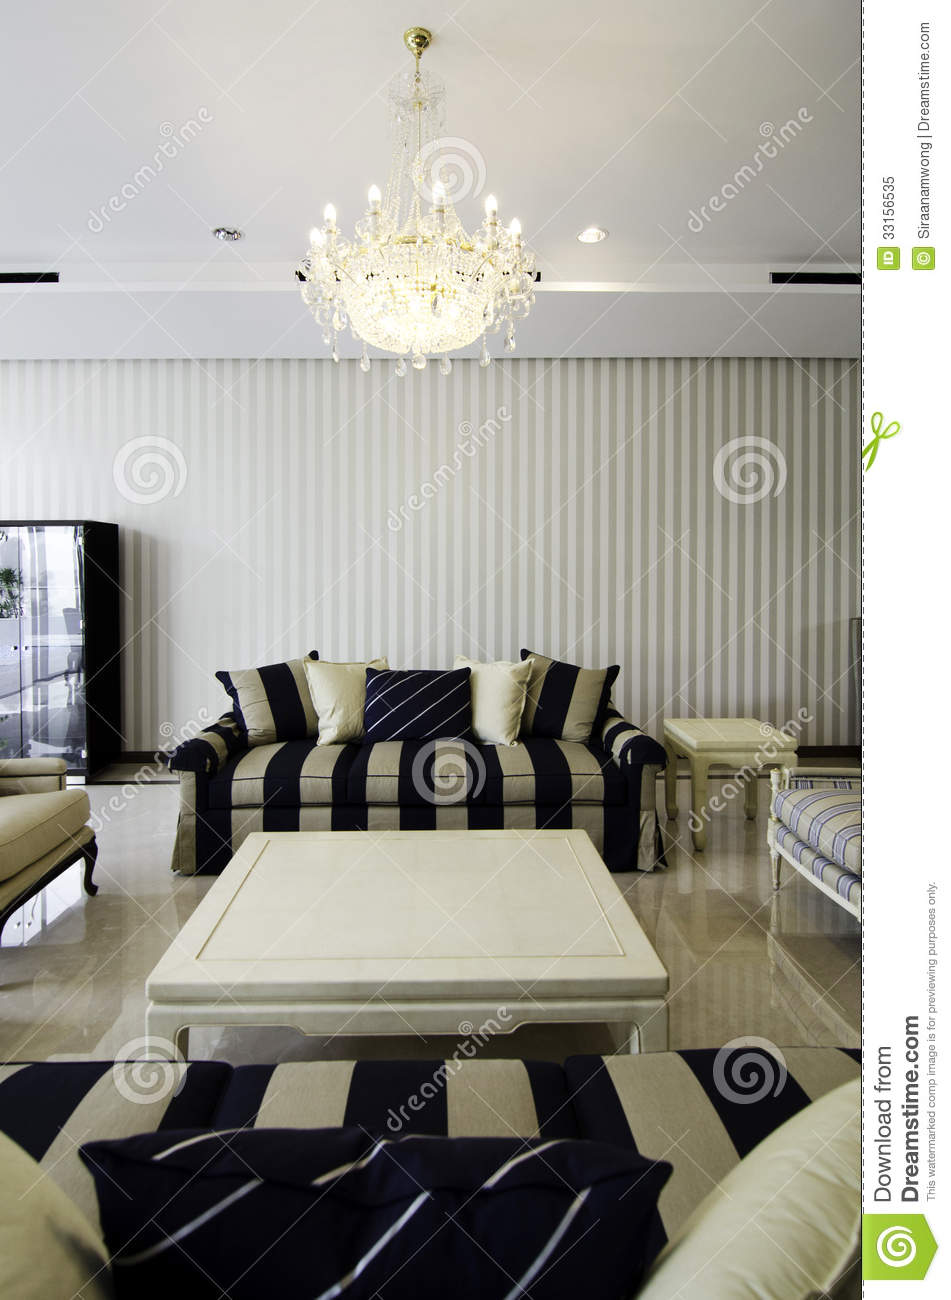 Luxury Living Room Royalty Free Stock Photo Image 33156535